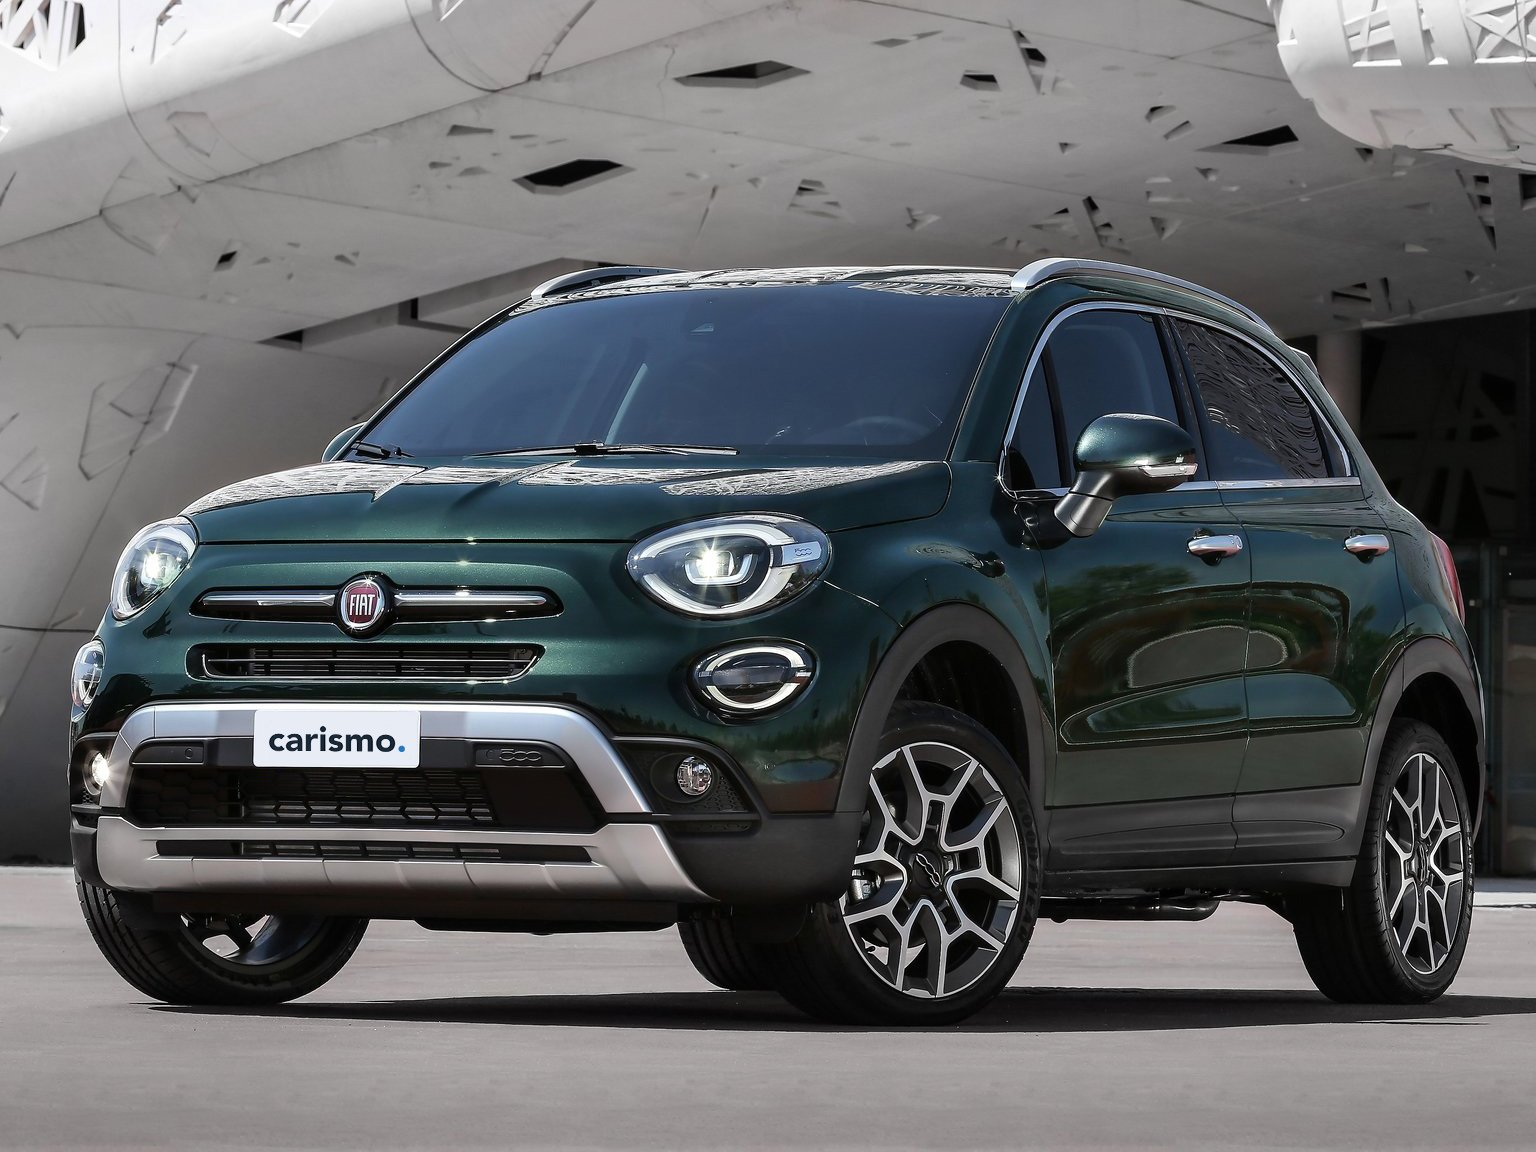 Video: Fiat 500X crash test